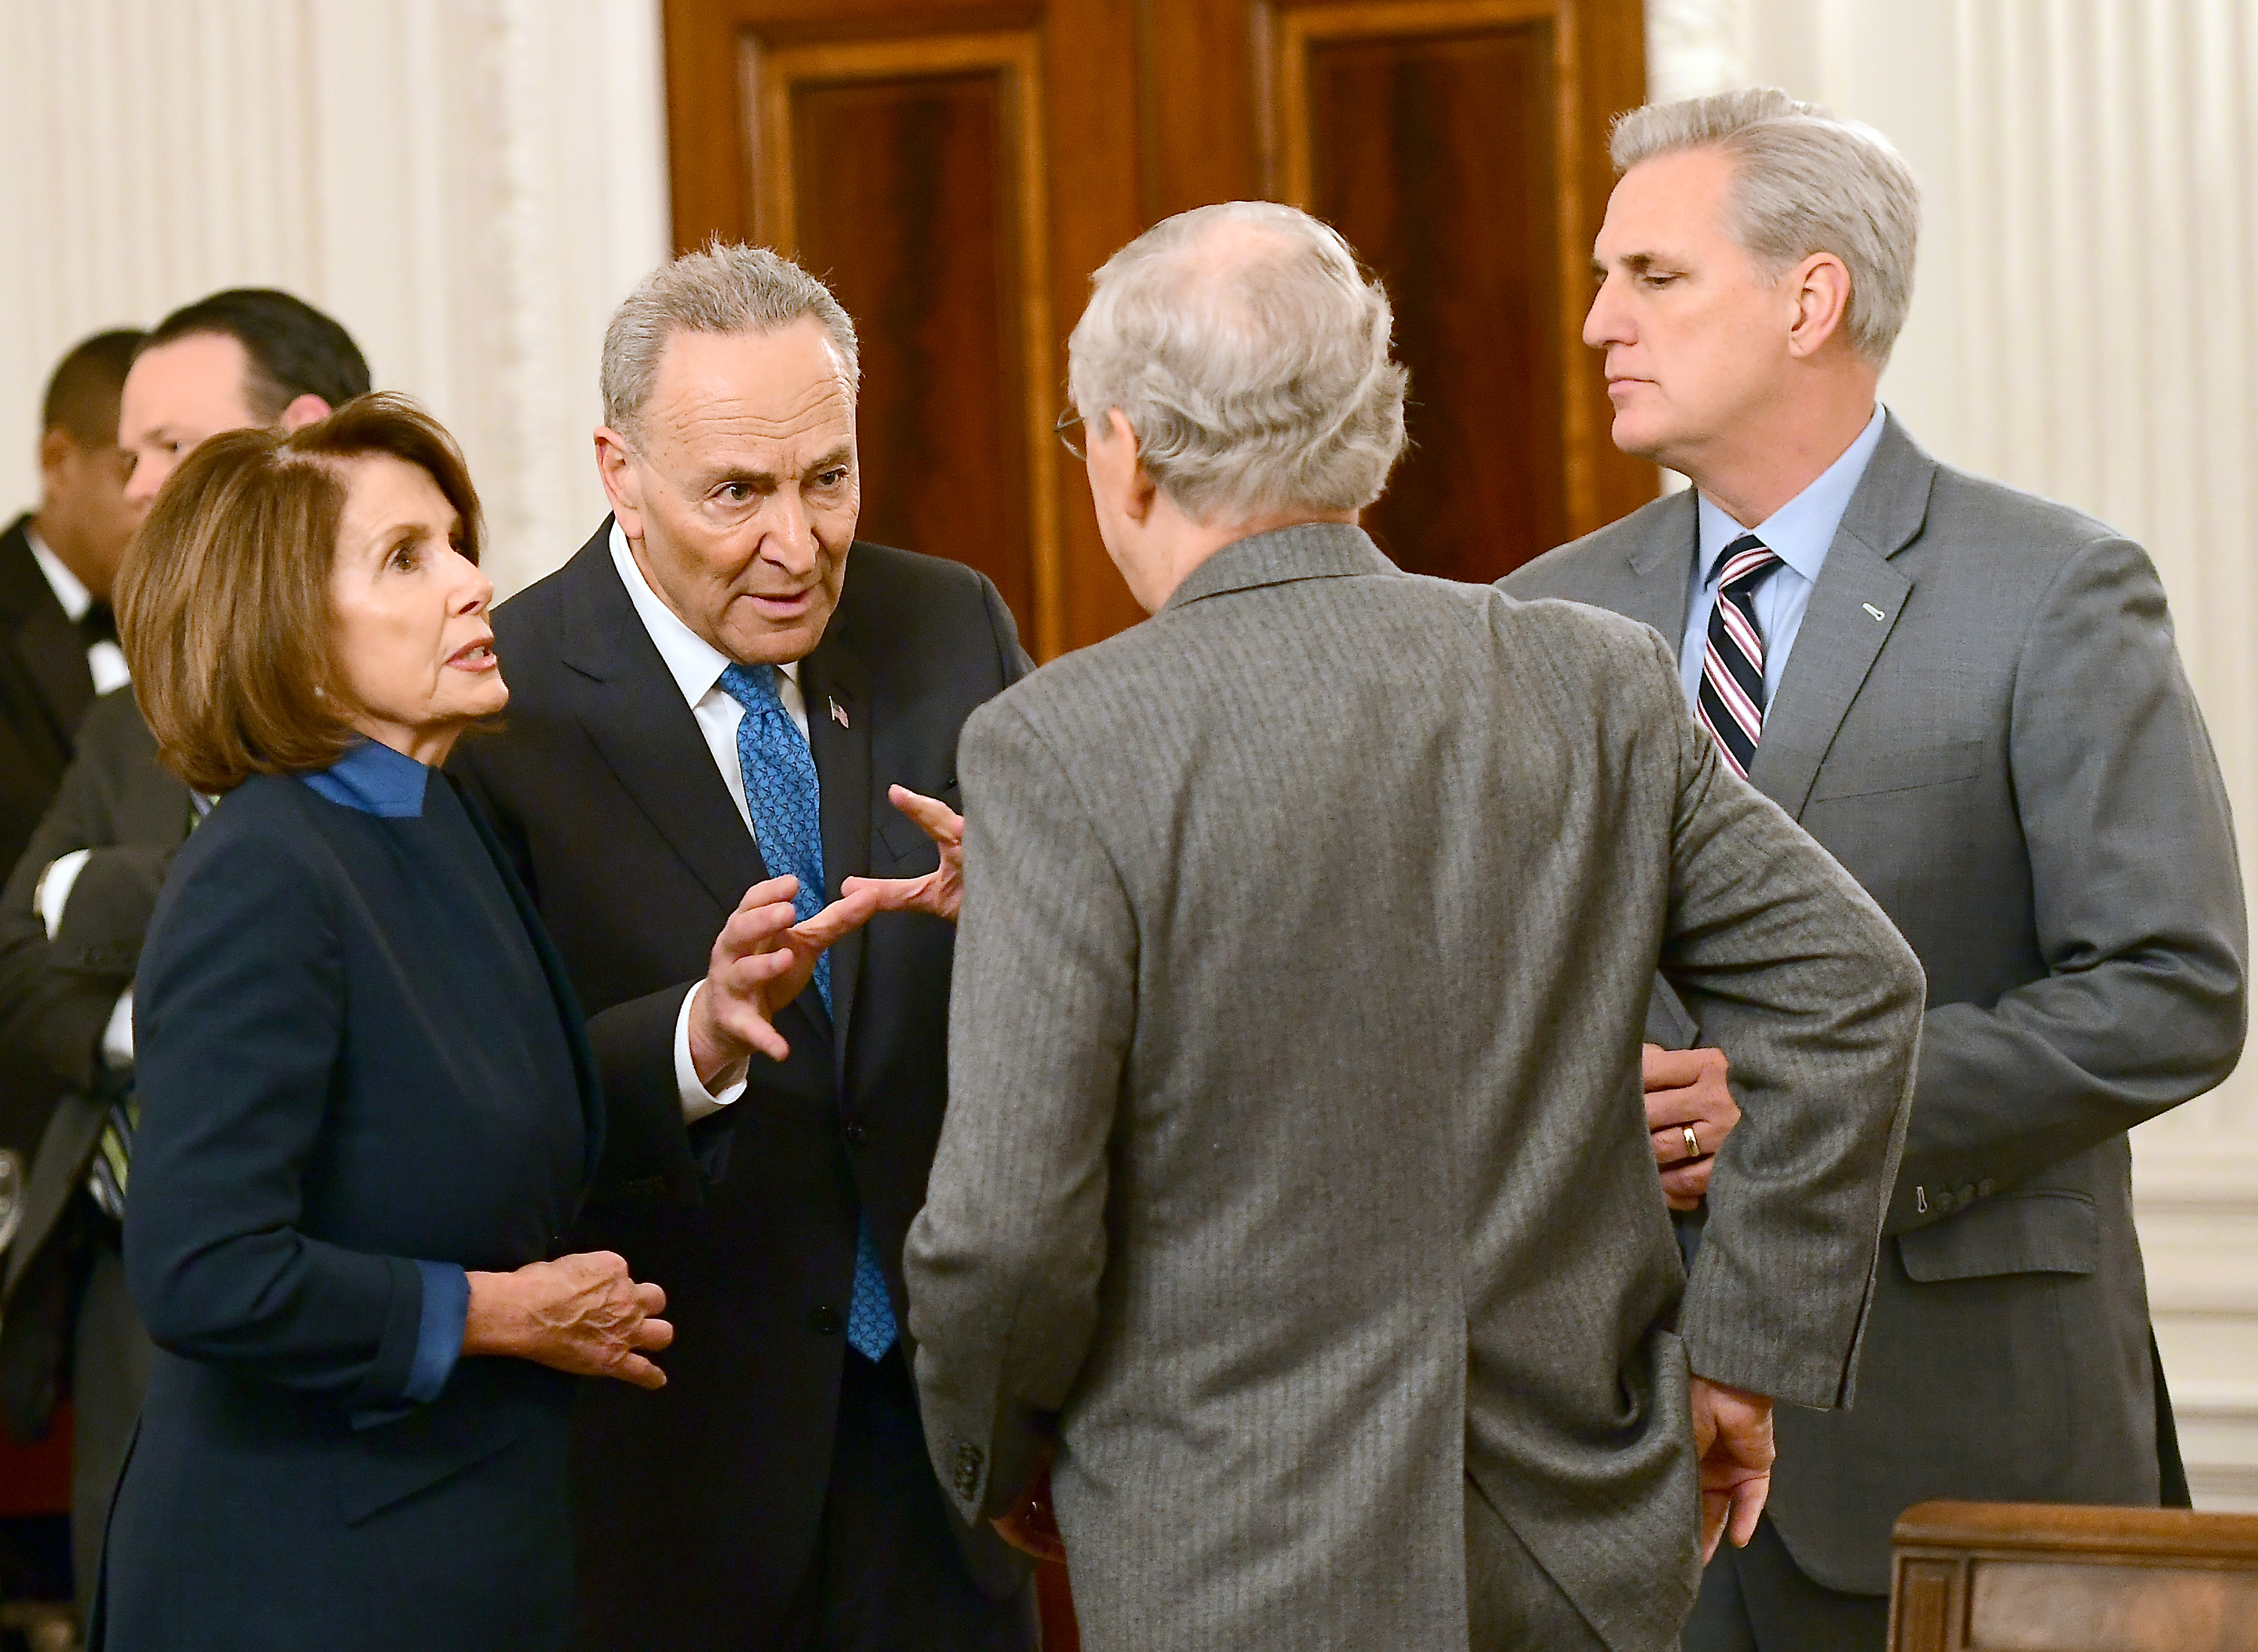 WASHINGTON, DC - JANUARY 23: (L-R) U.S. House Minority Leader Nancy Pelosi (D-CA), Senate Minority Leader Chuck Schumer (D-NY), Senate Minority Leader Mitch McConnell (R-KY) and House Majority Leader Kevin McCarthy (R-CA) talk at a reception held by President Donald Trump for House and Senate Republican and Democratic leaders in the State Dining Room of the White House January 23, 2017 in Washington, DC. (Photo by Ron Sachs-Pool/Getty Images)